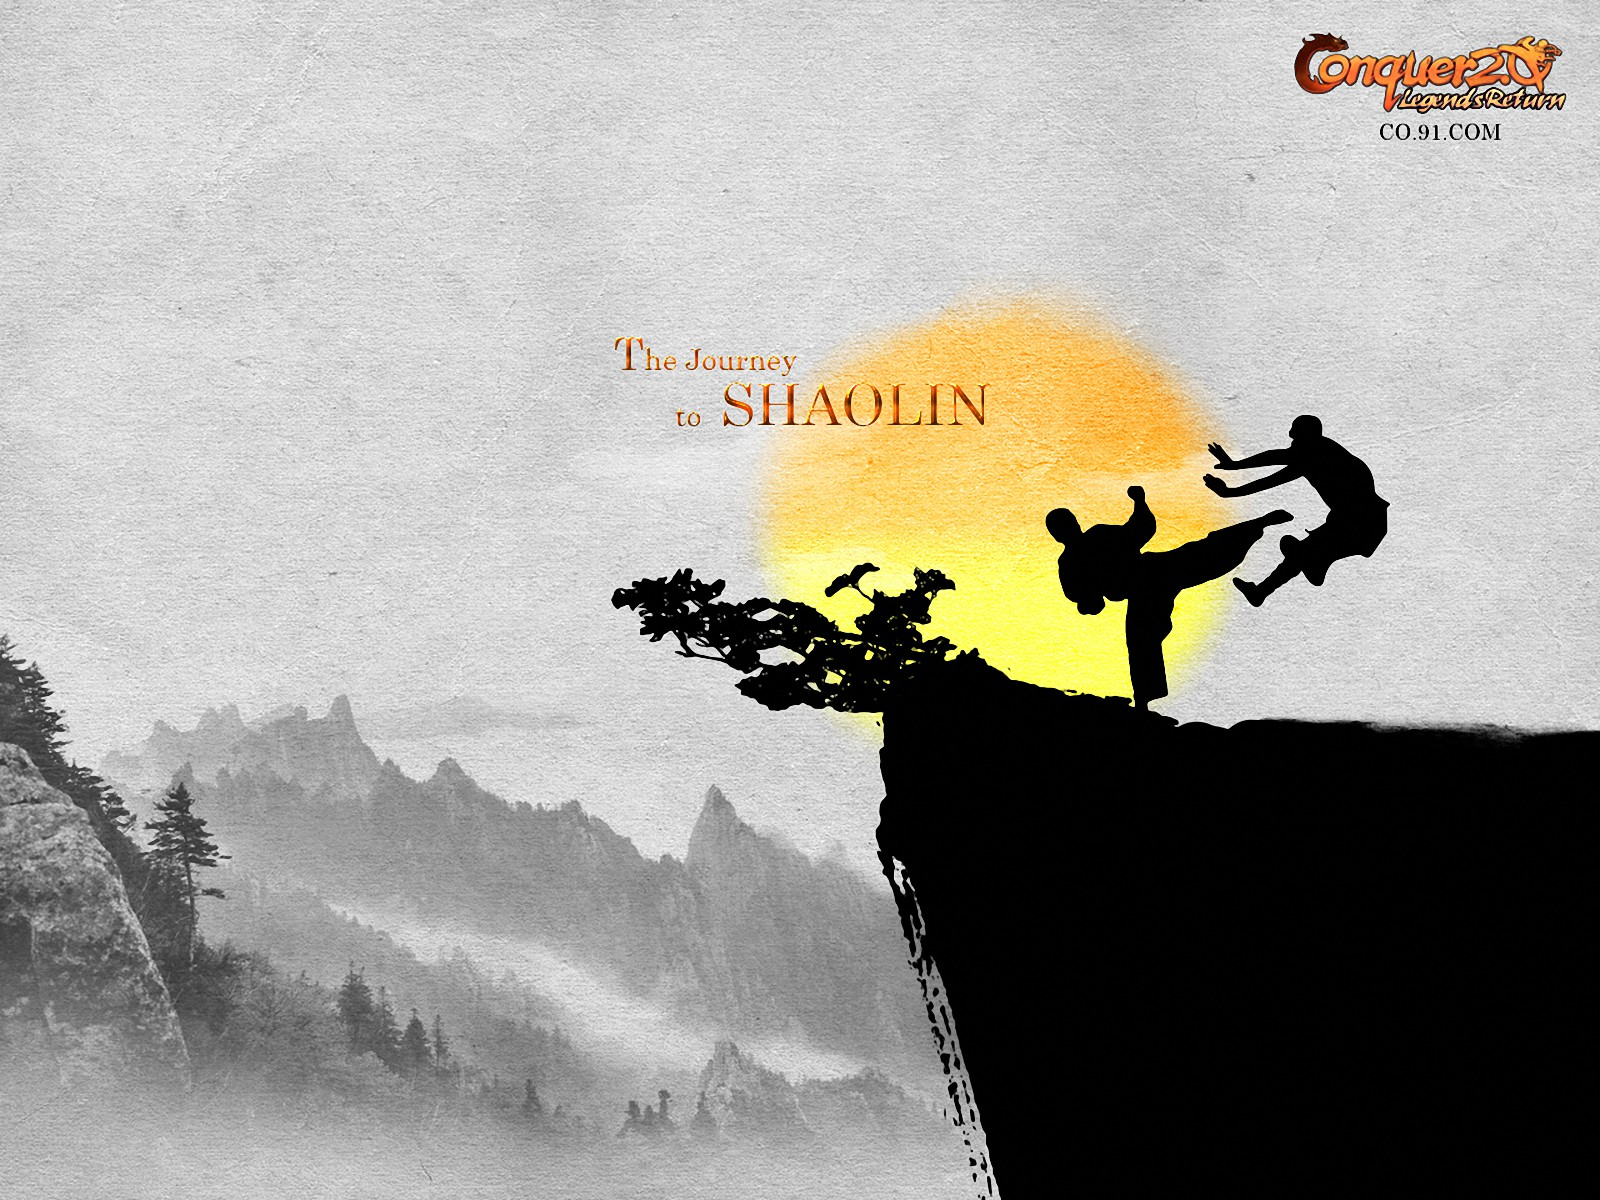 shaolin temple wallpaper - photo #28